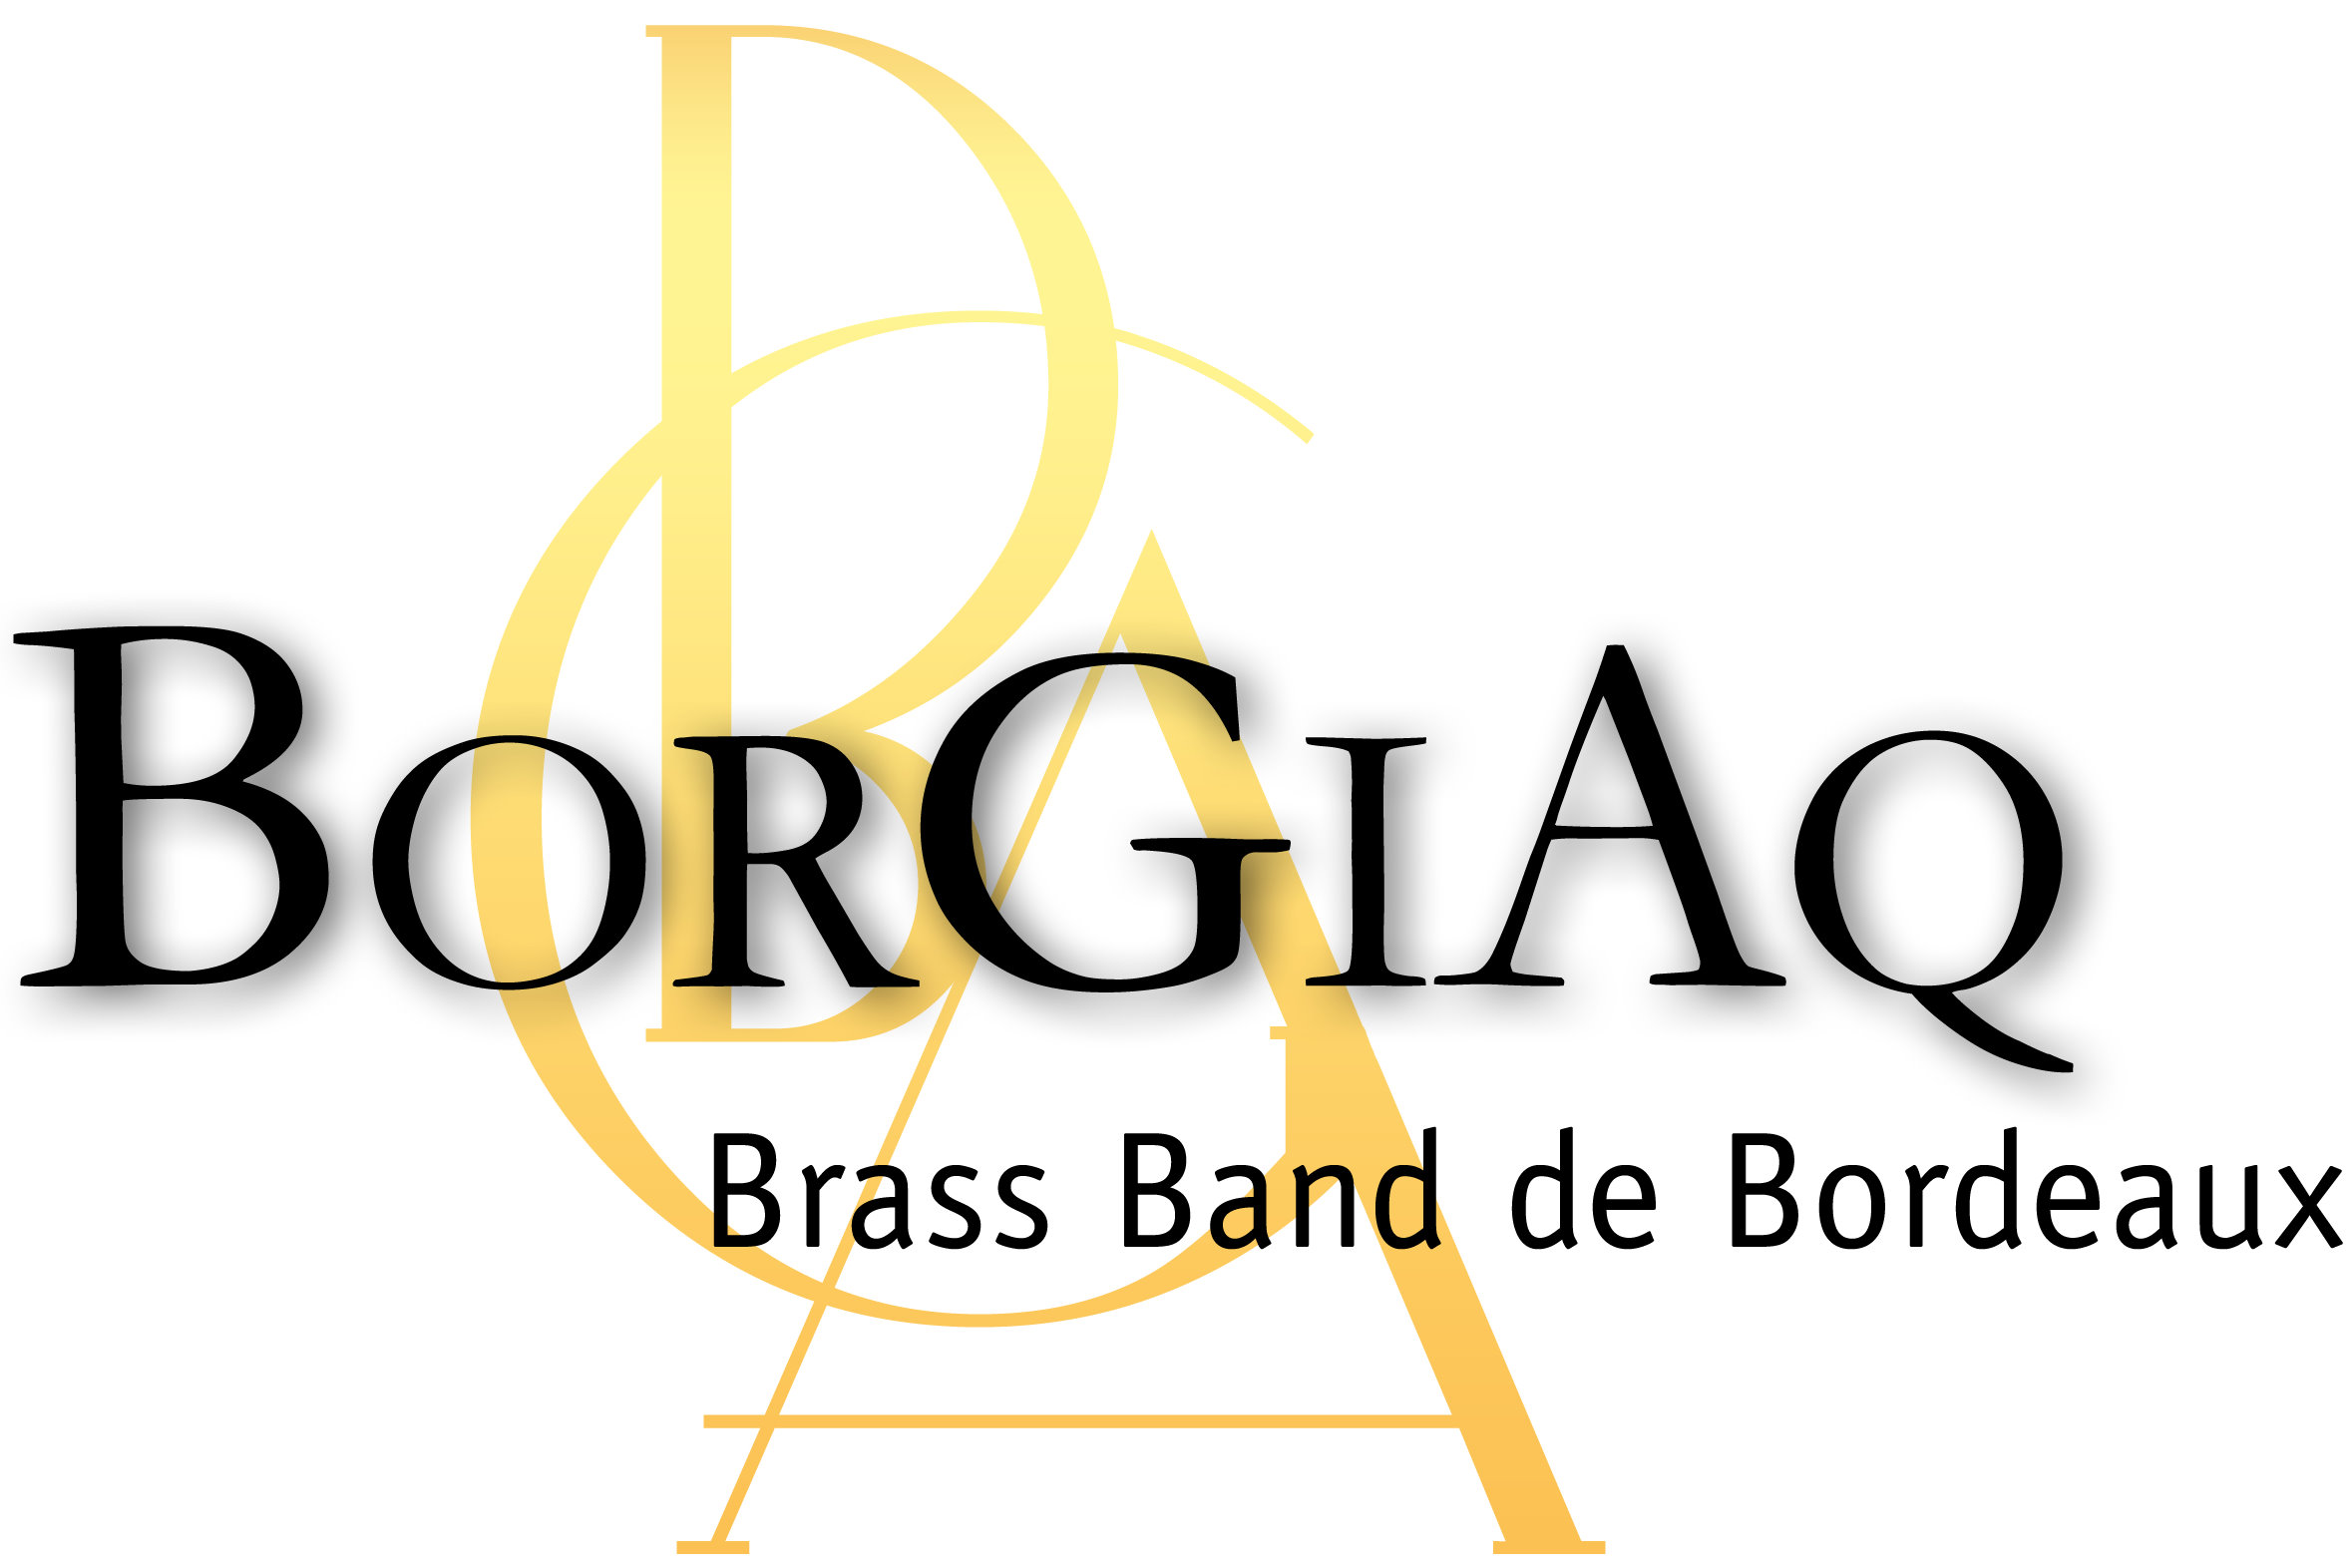 Brass Band BorGiAq